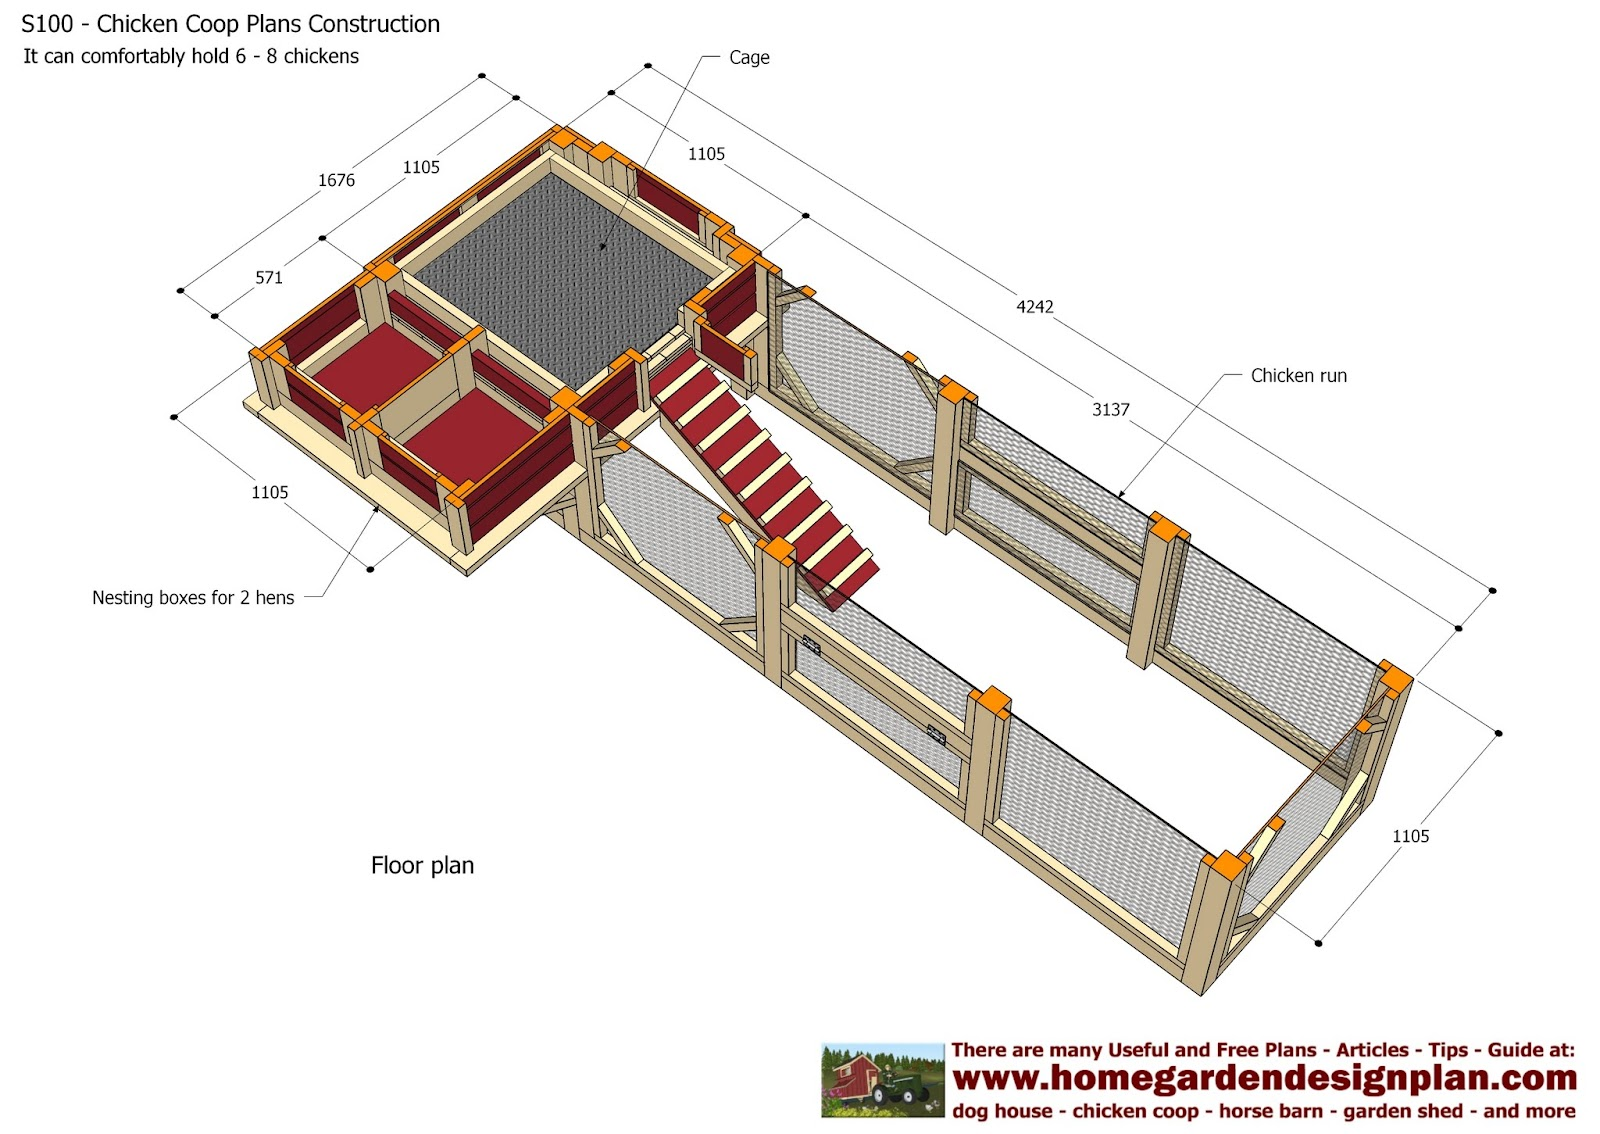 Home garden plans s100 chicken coop plans construction for Chicken coop plans free pdf